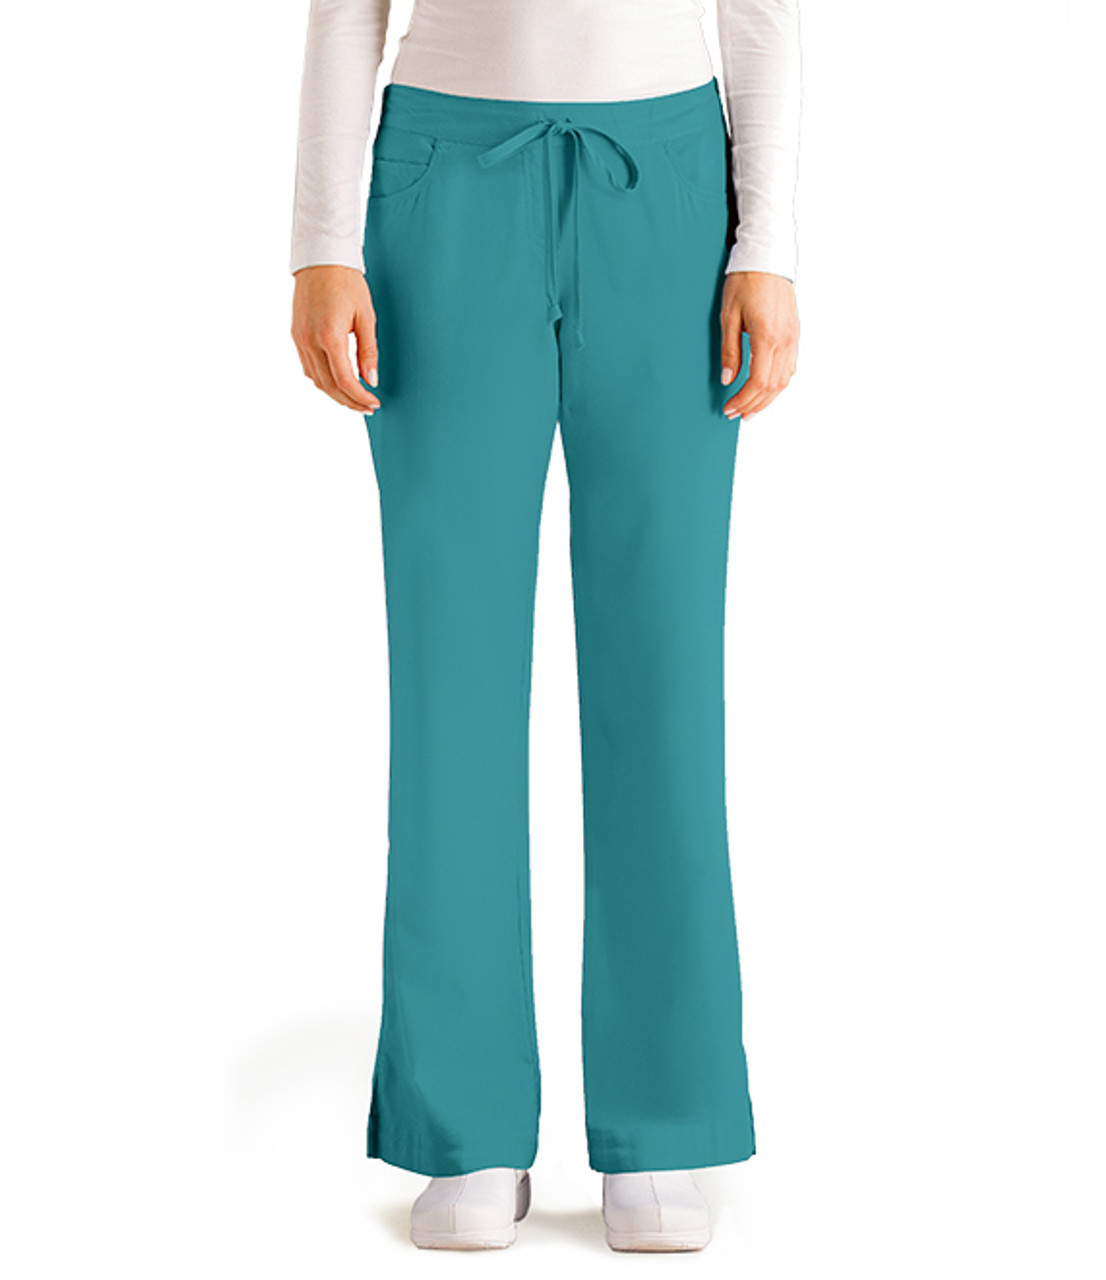 (4232) Grey's Anatomy Scrubs - 5 Pocket Drawstring Scrub Pants